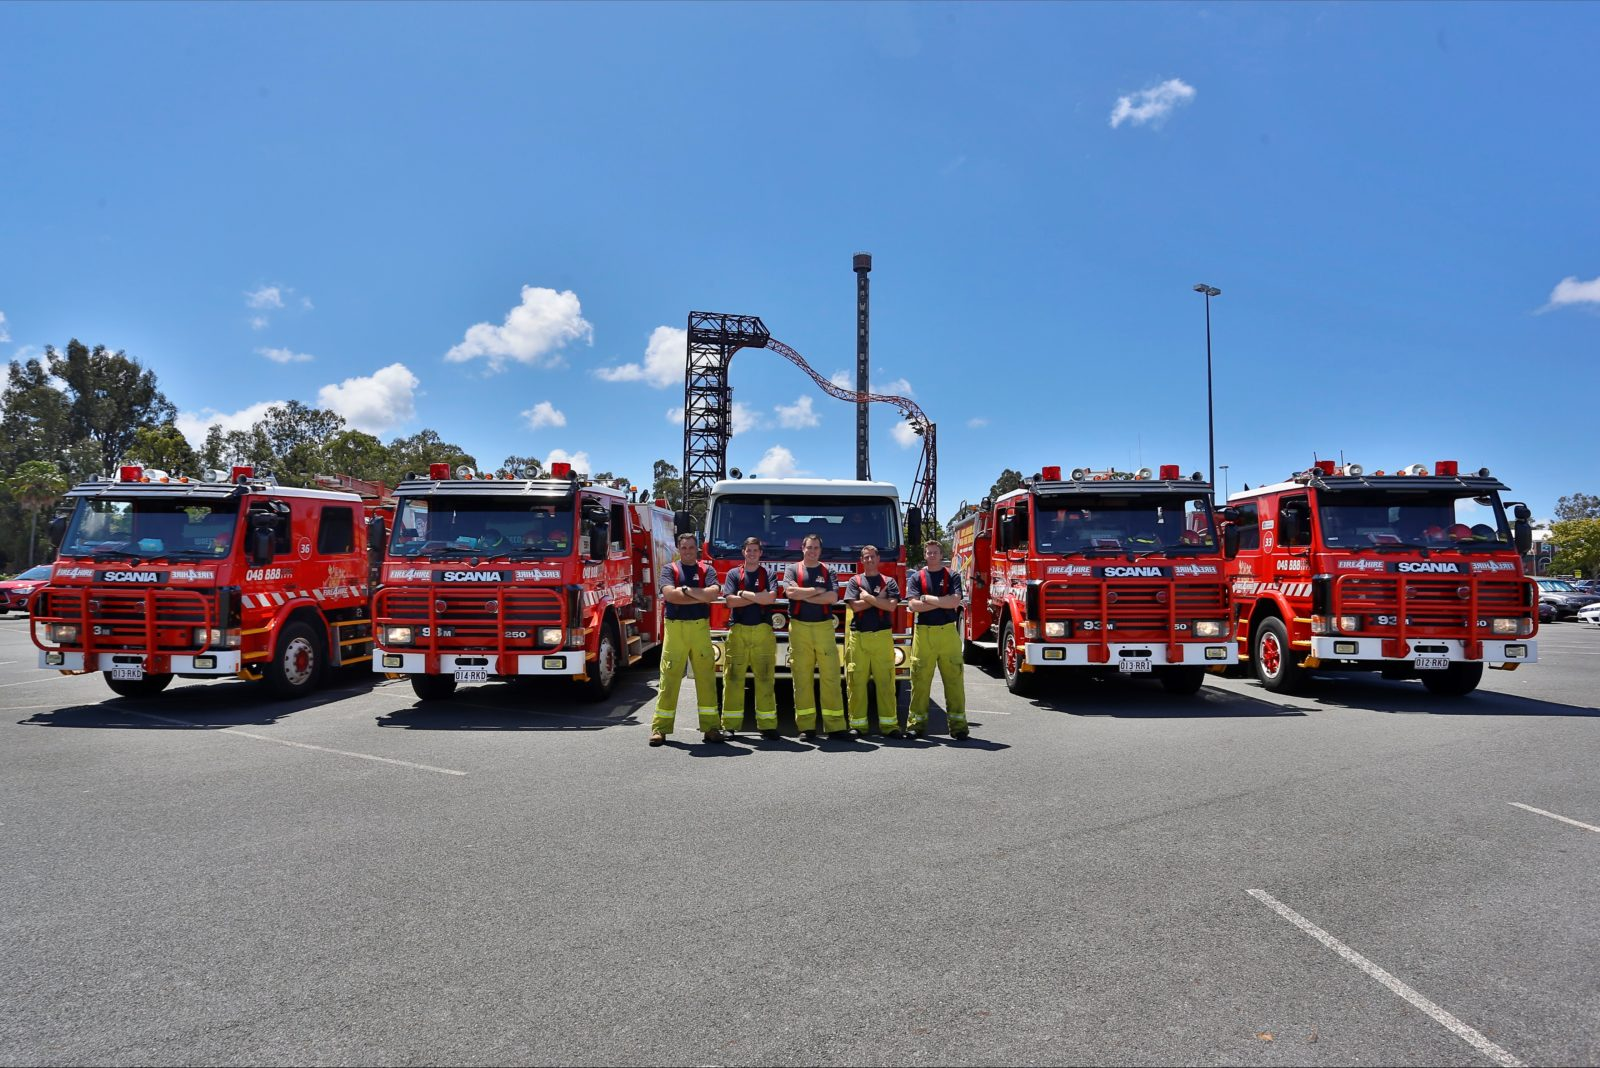 Fire trucks & firefighters available for tourism transport, airports, hotels, theme parks.